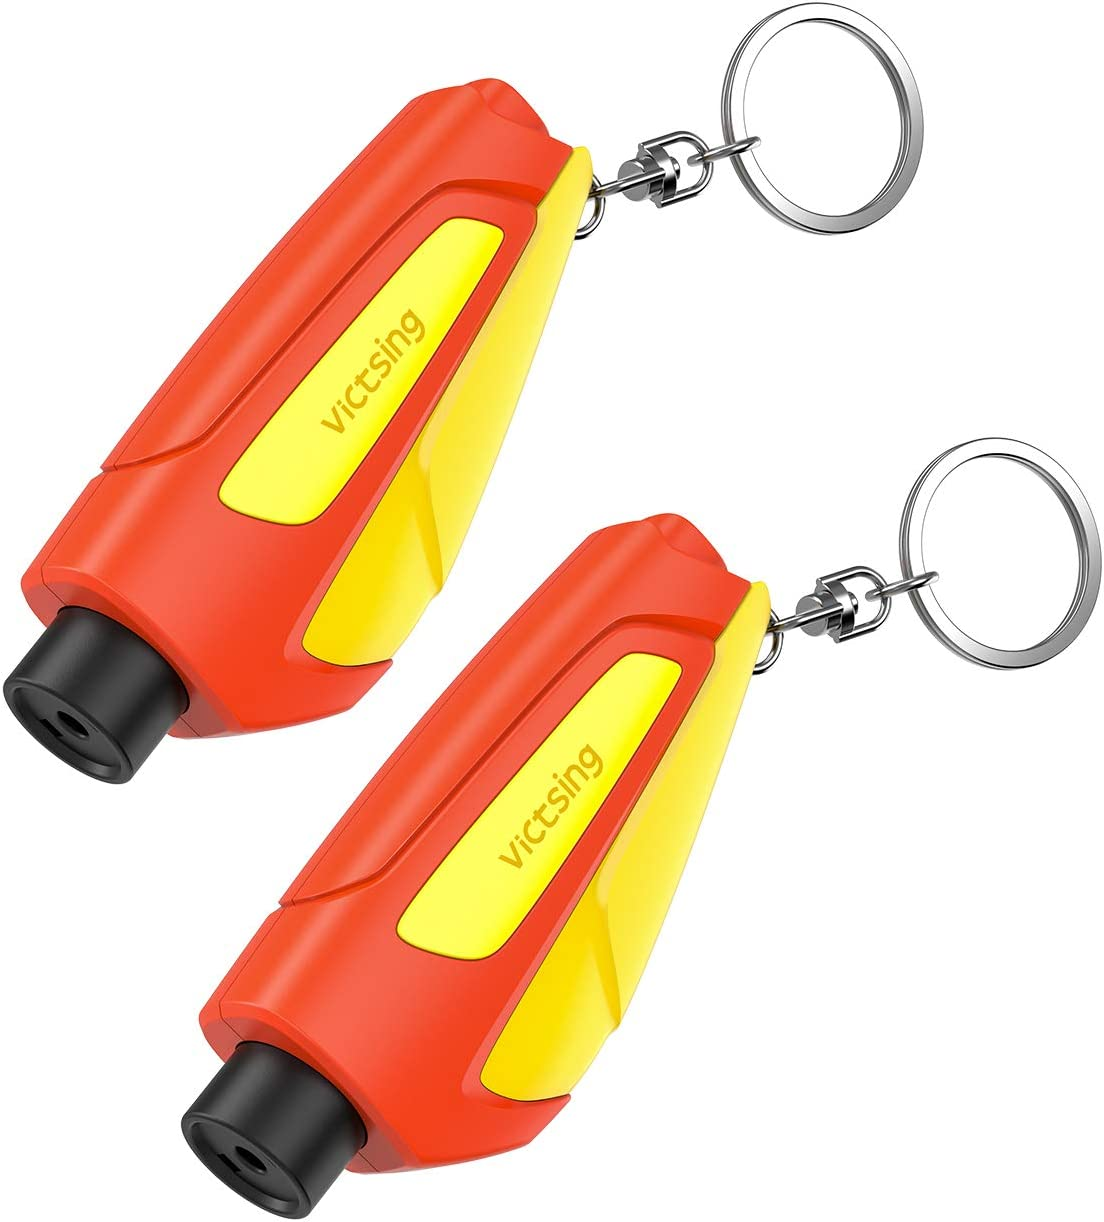 Inc 05.300.02.05.09 Blue//Orange//Safety Yellow Keychain Car Escape Tool 4 Pack RESQME